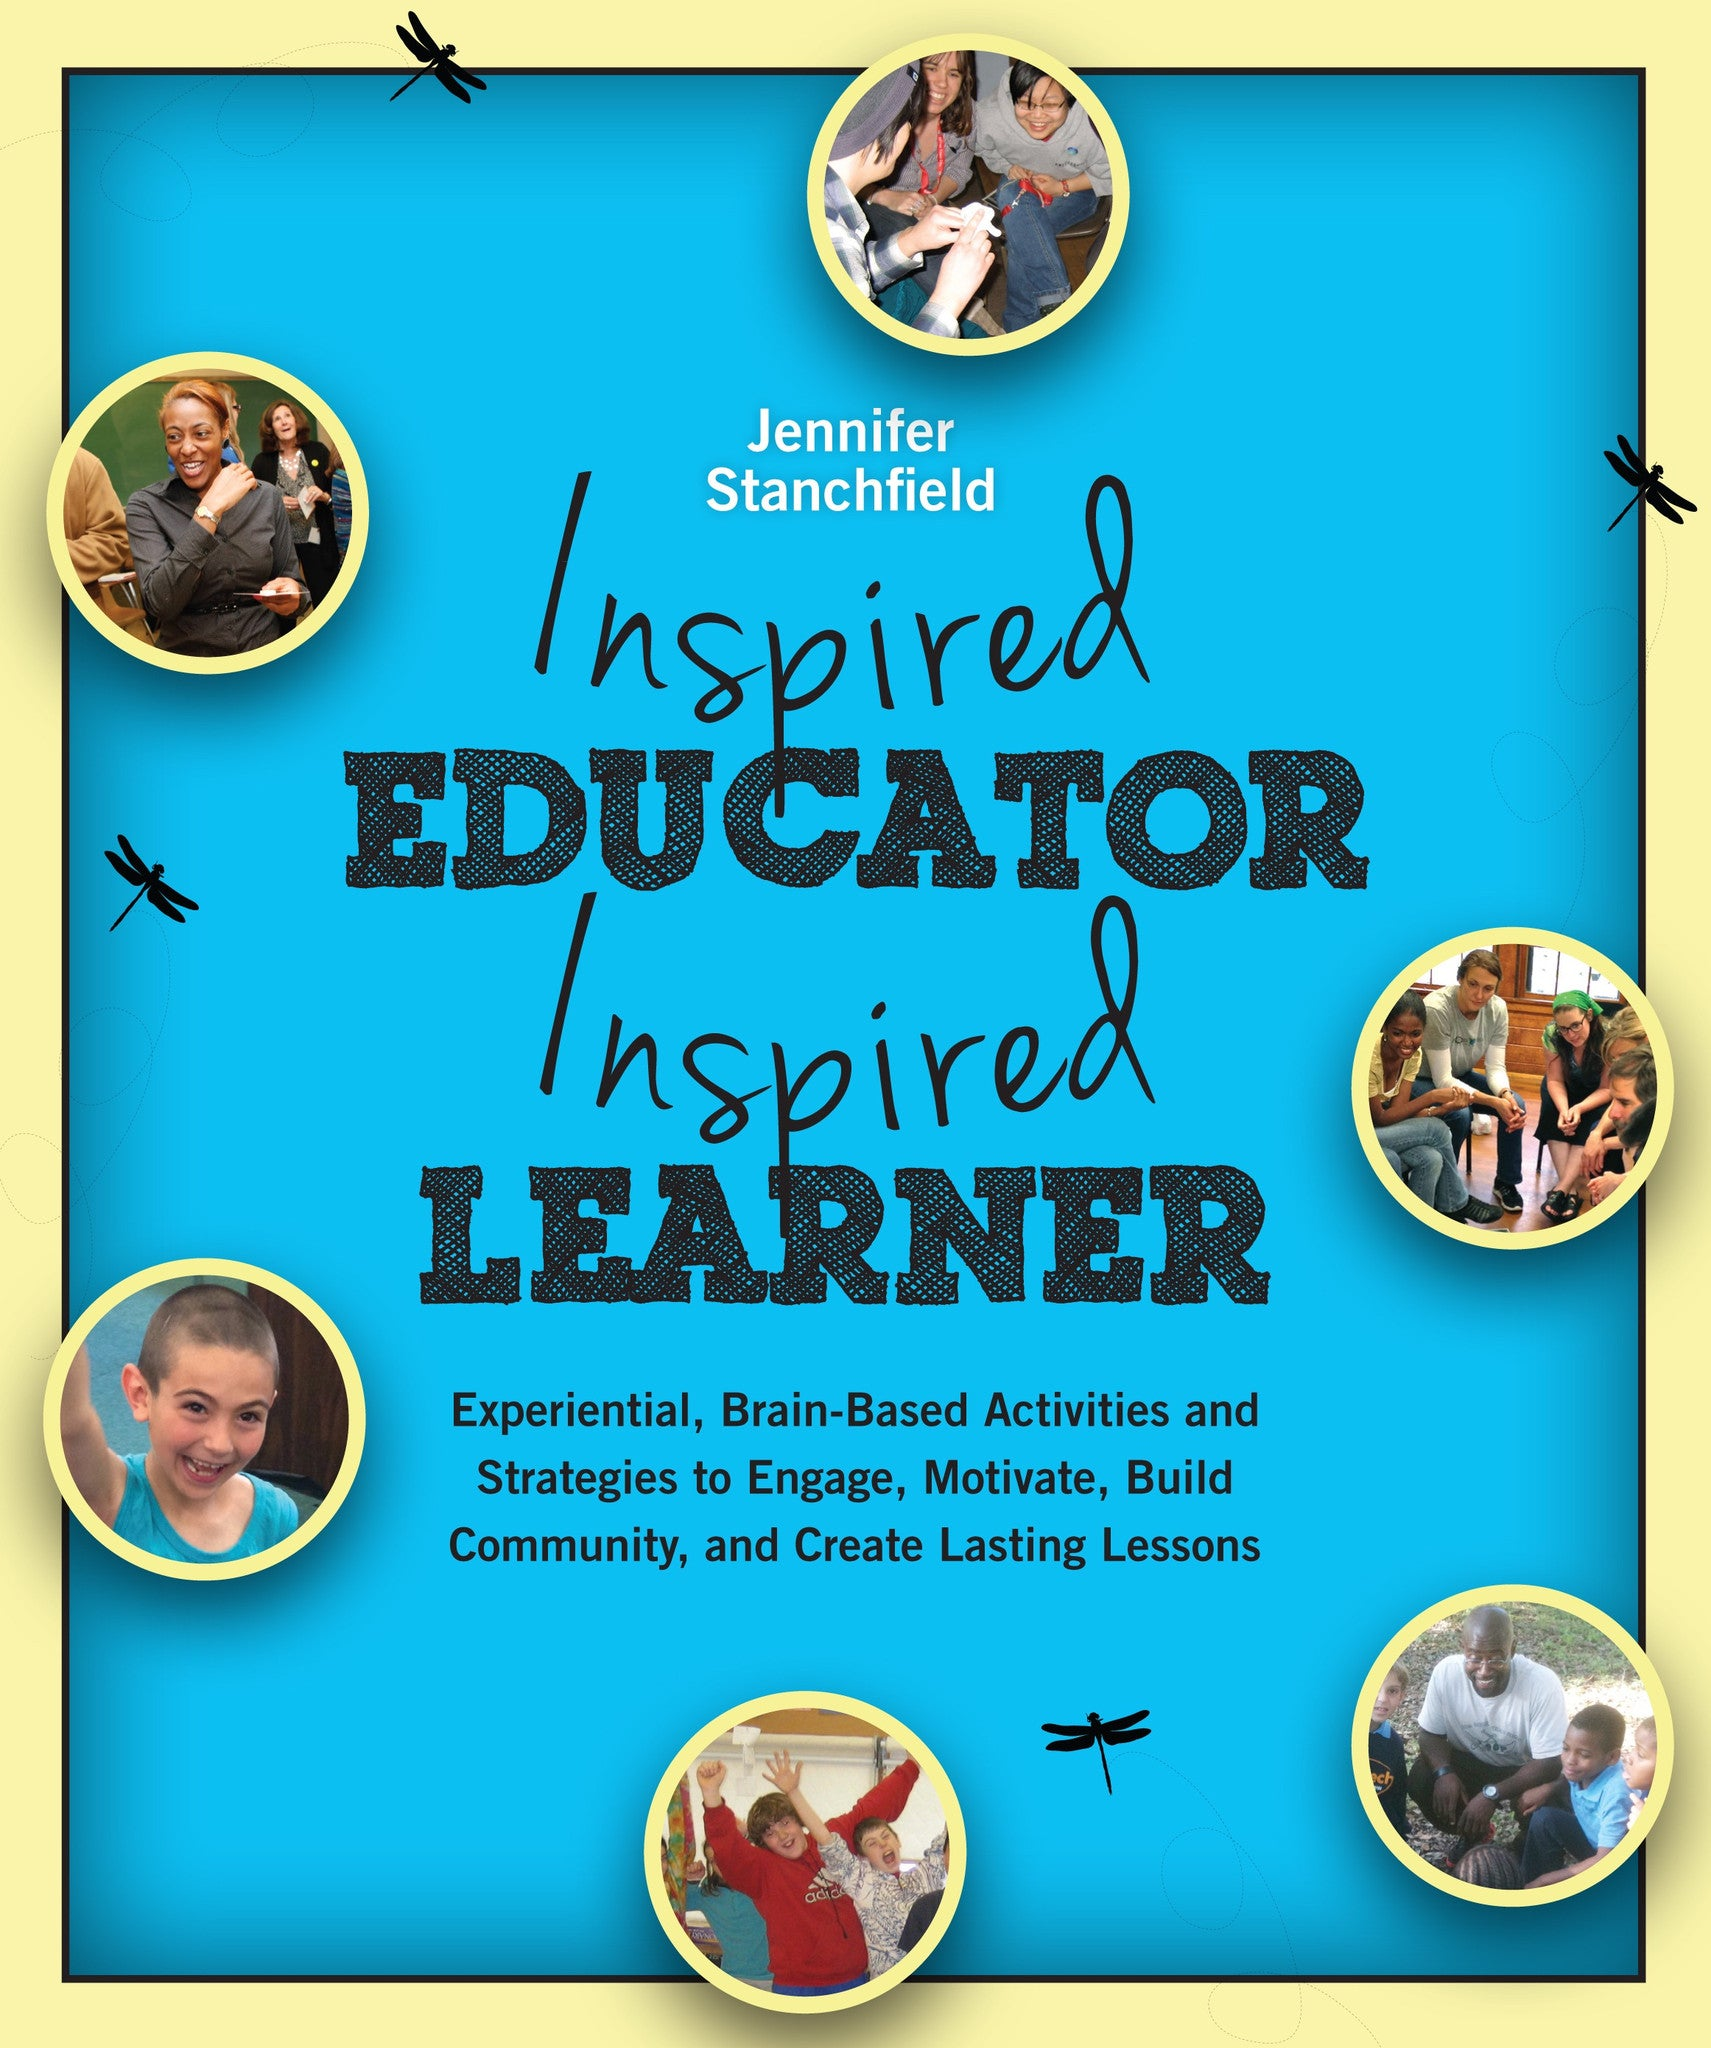 Inspired Educator, Inspired Learner Workshop • Nashville, TN • February 22nd